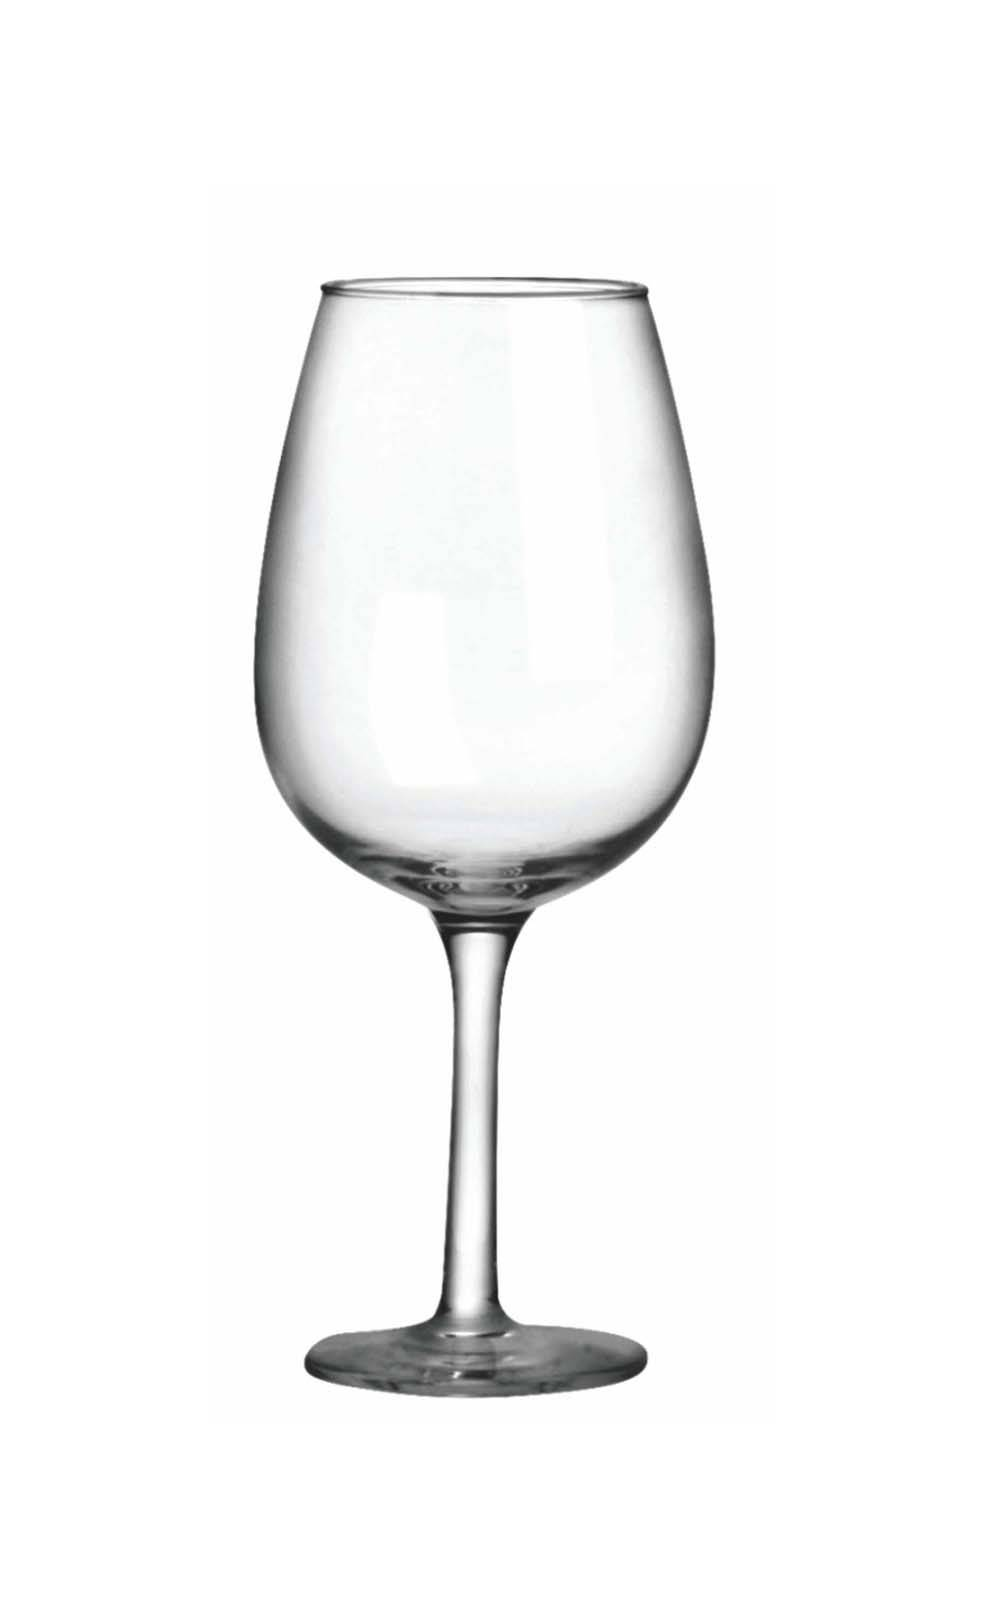 goblet, wine glass cup, champagne glass cup, pilsner